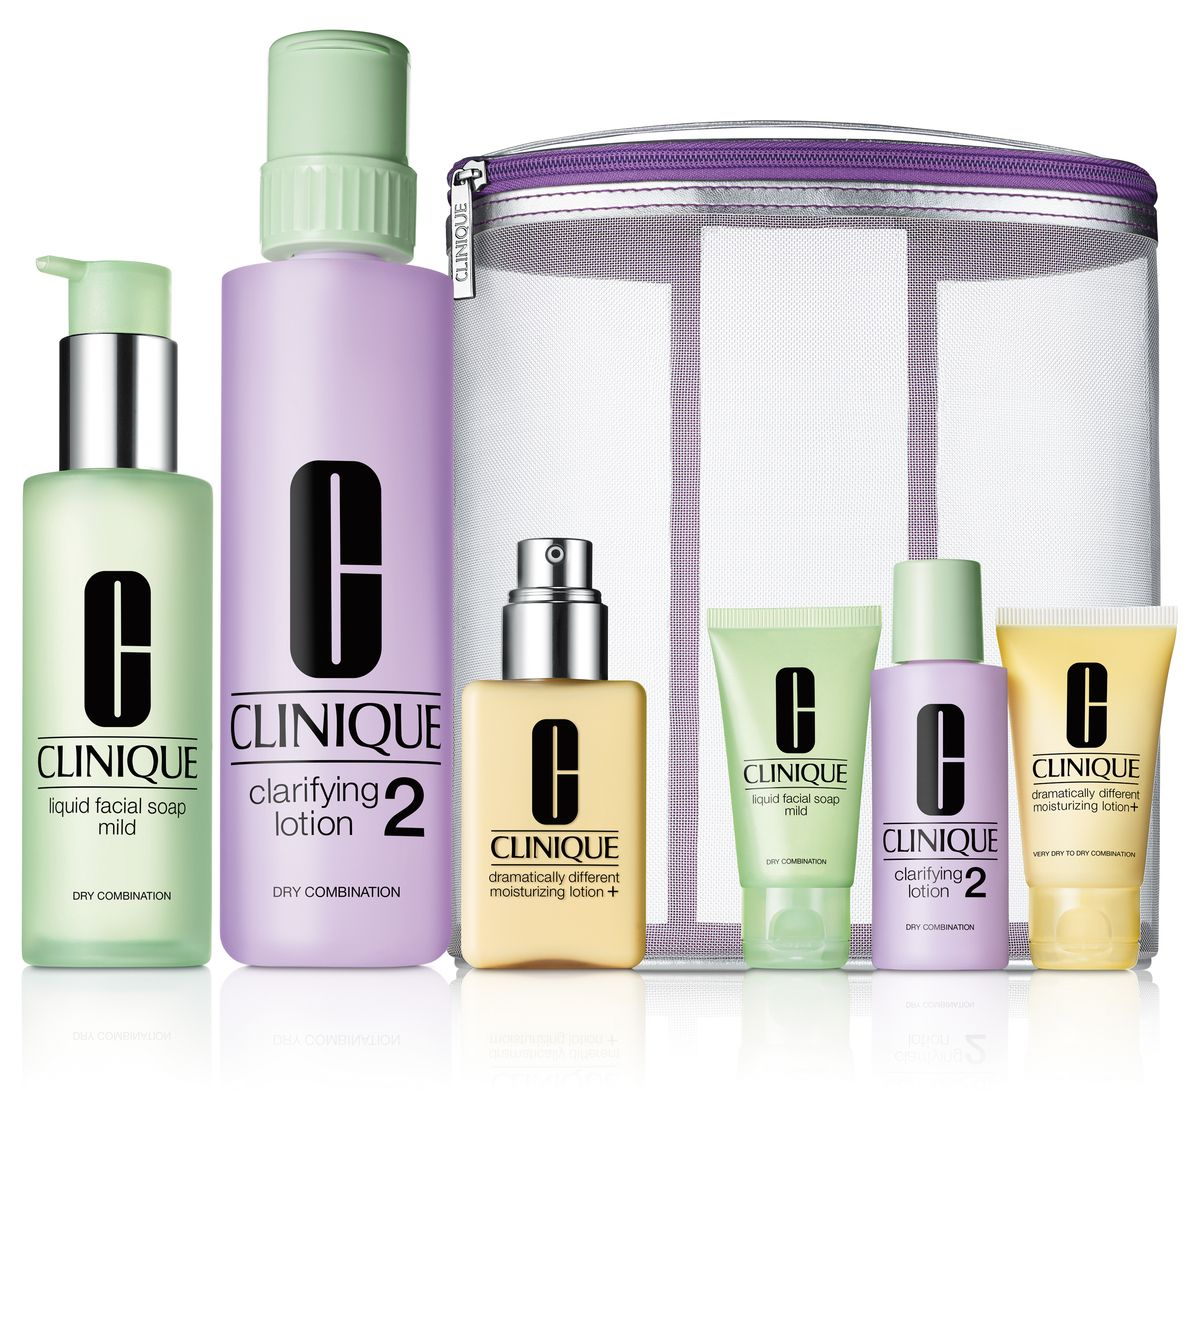 Official Site in 2020 Clinique makeup, Skin care, Facial